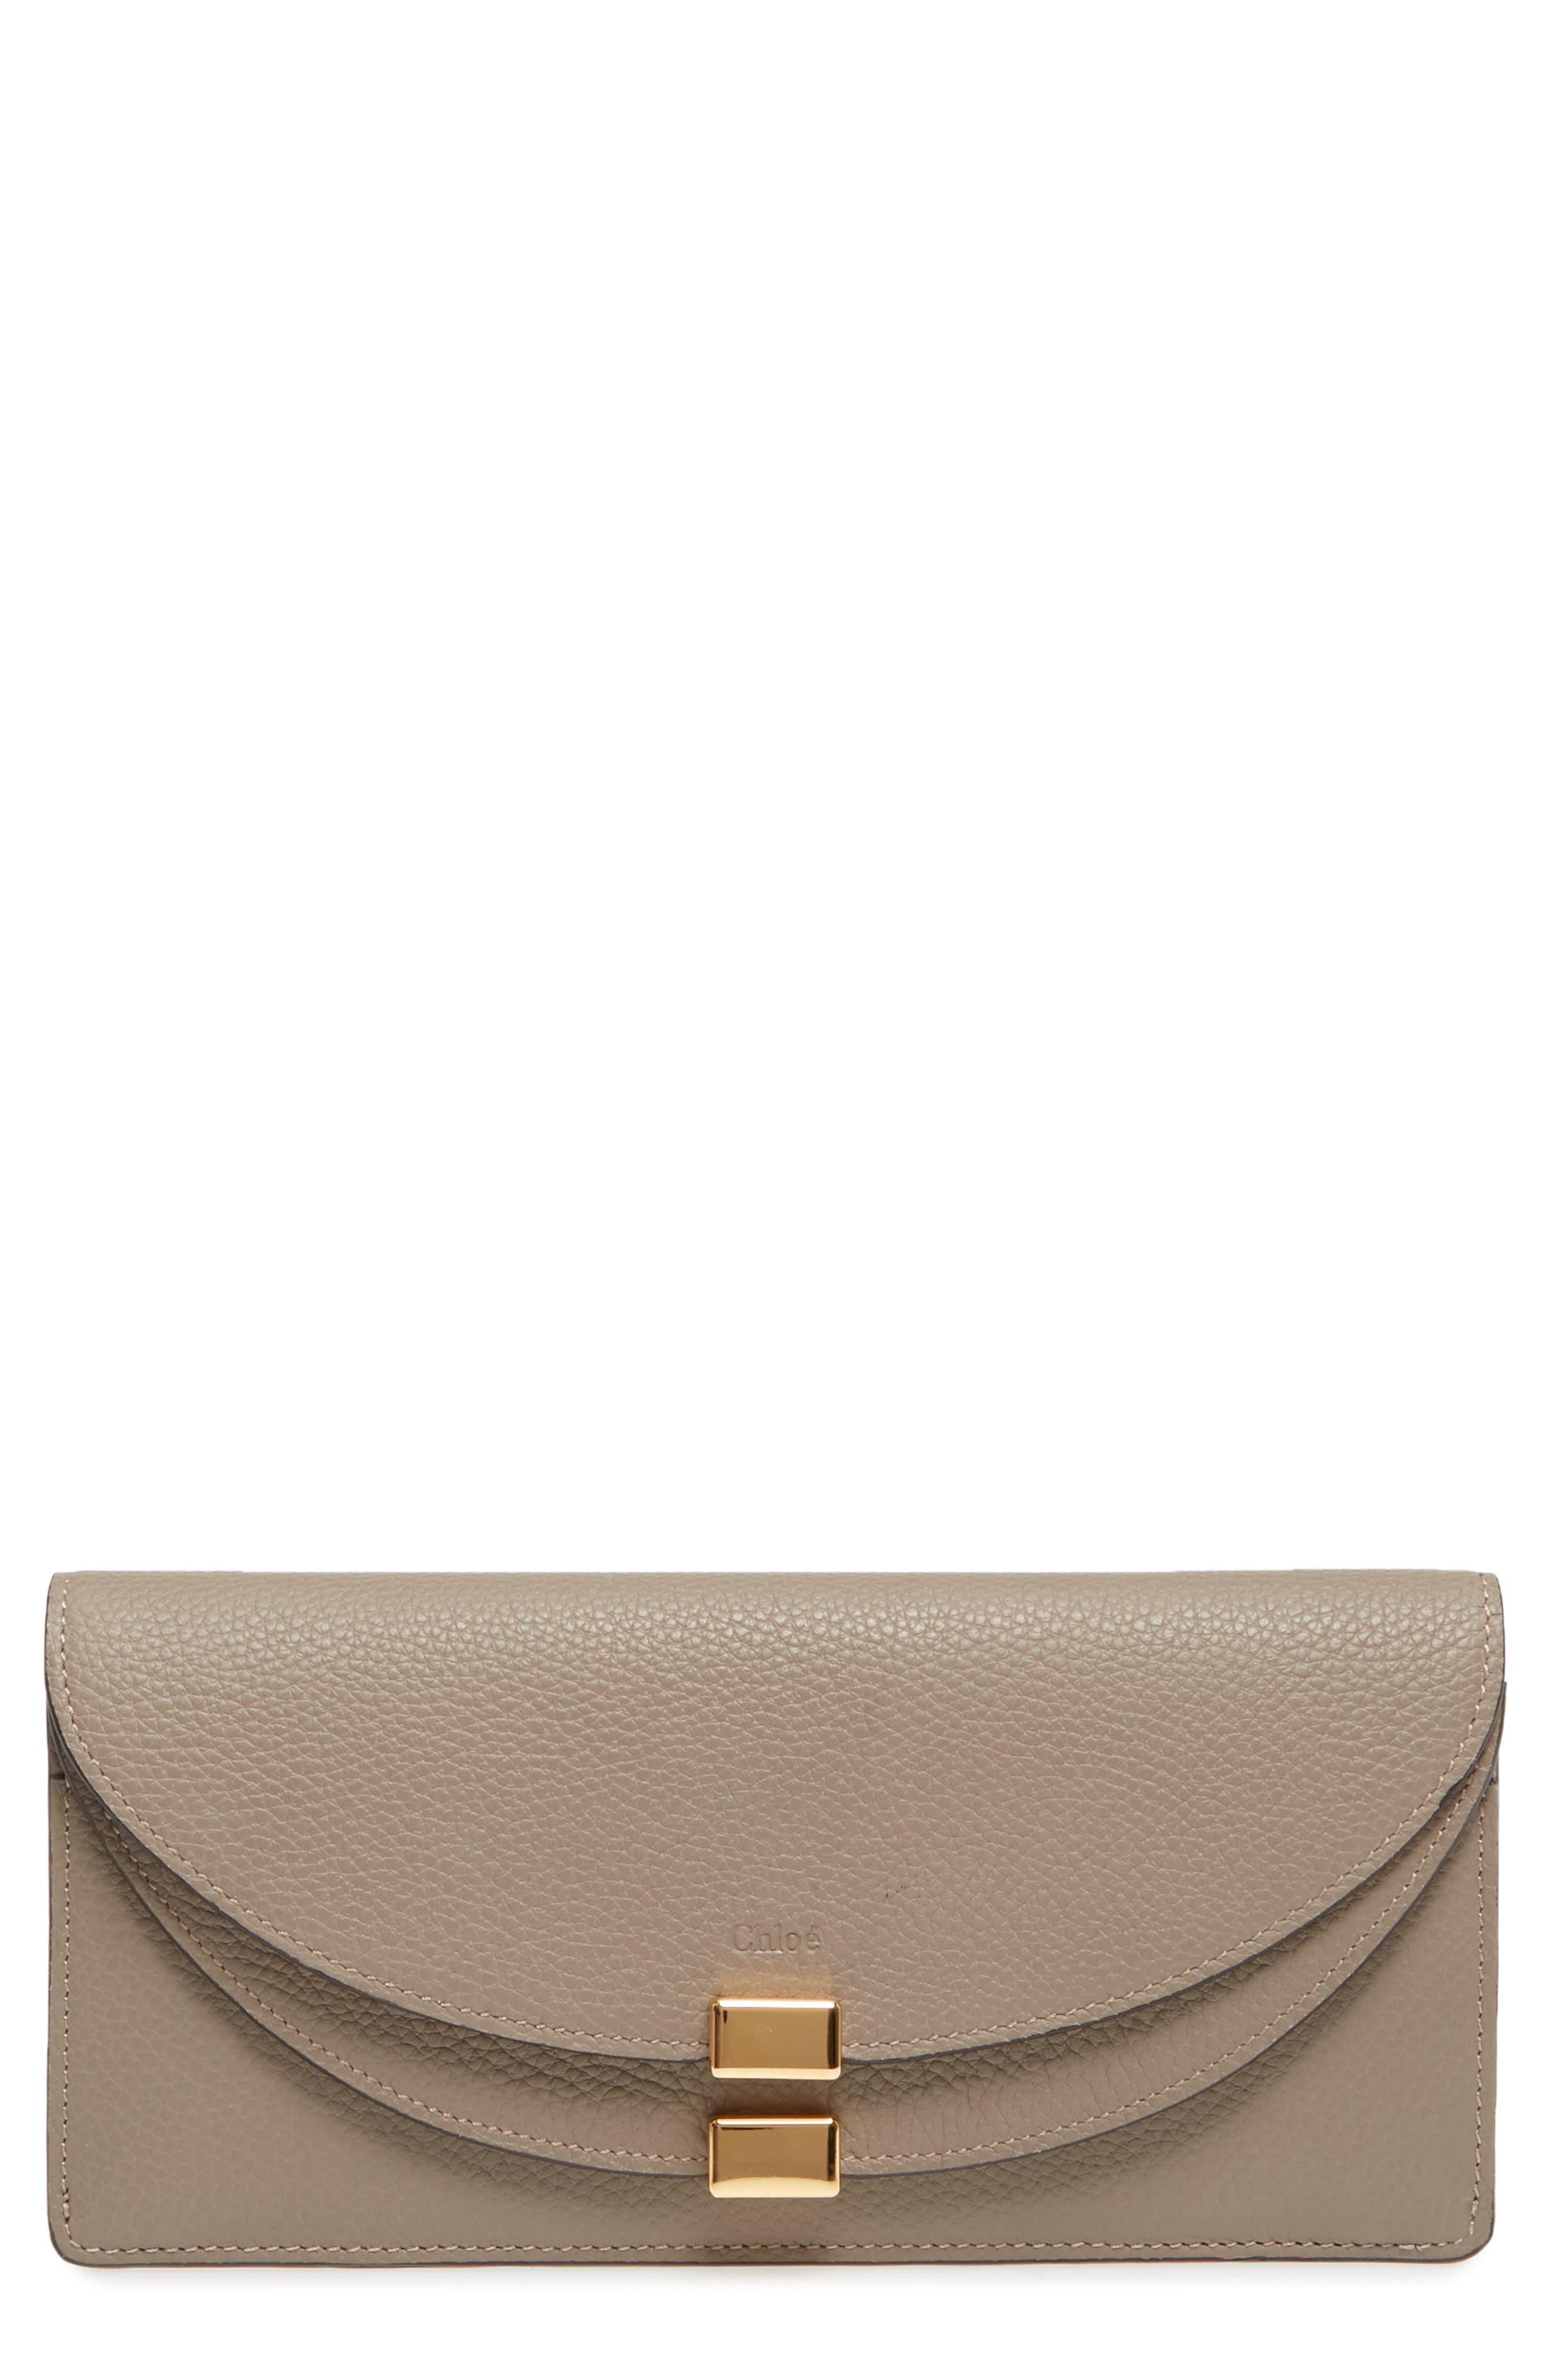 Georgia Continental Leather Wallet,                         Main,                         color, 020